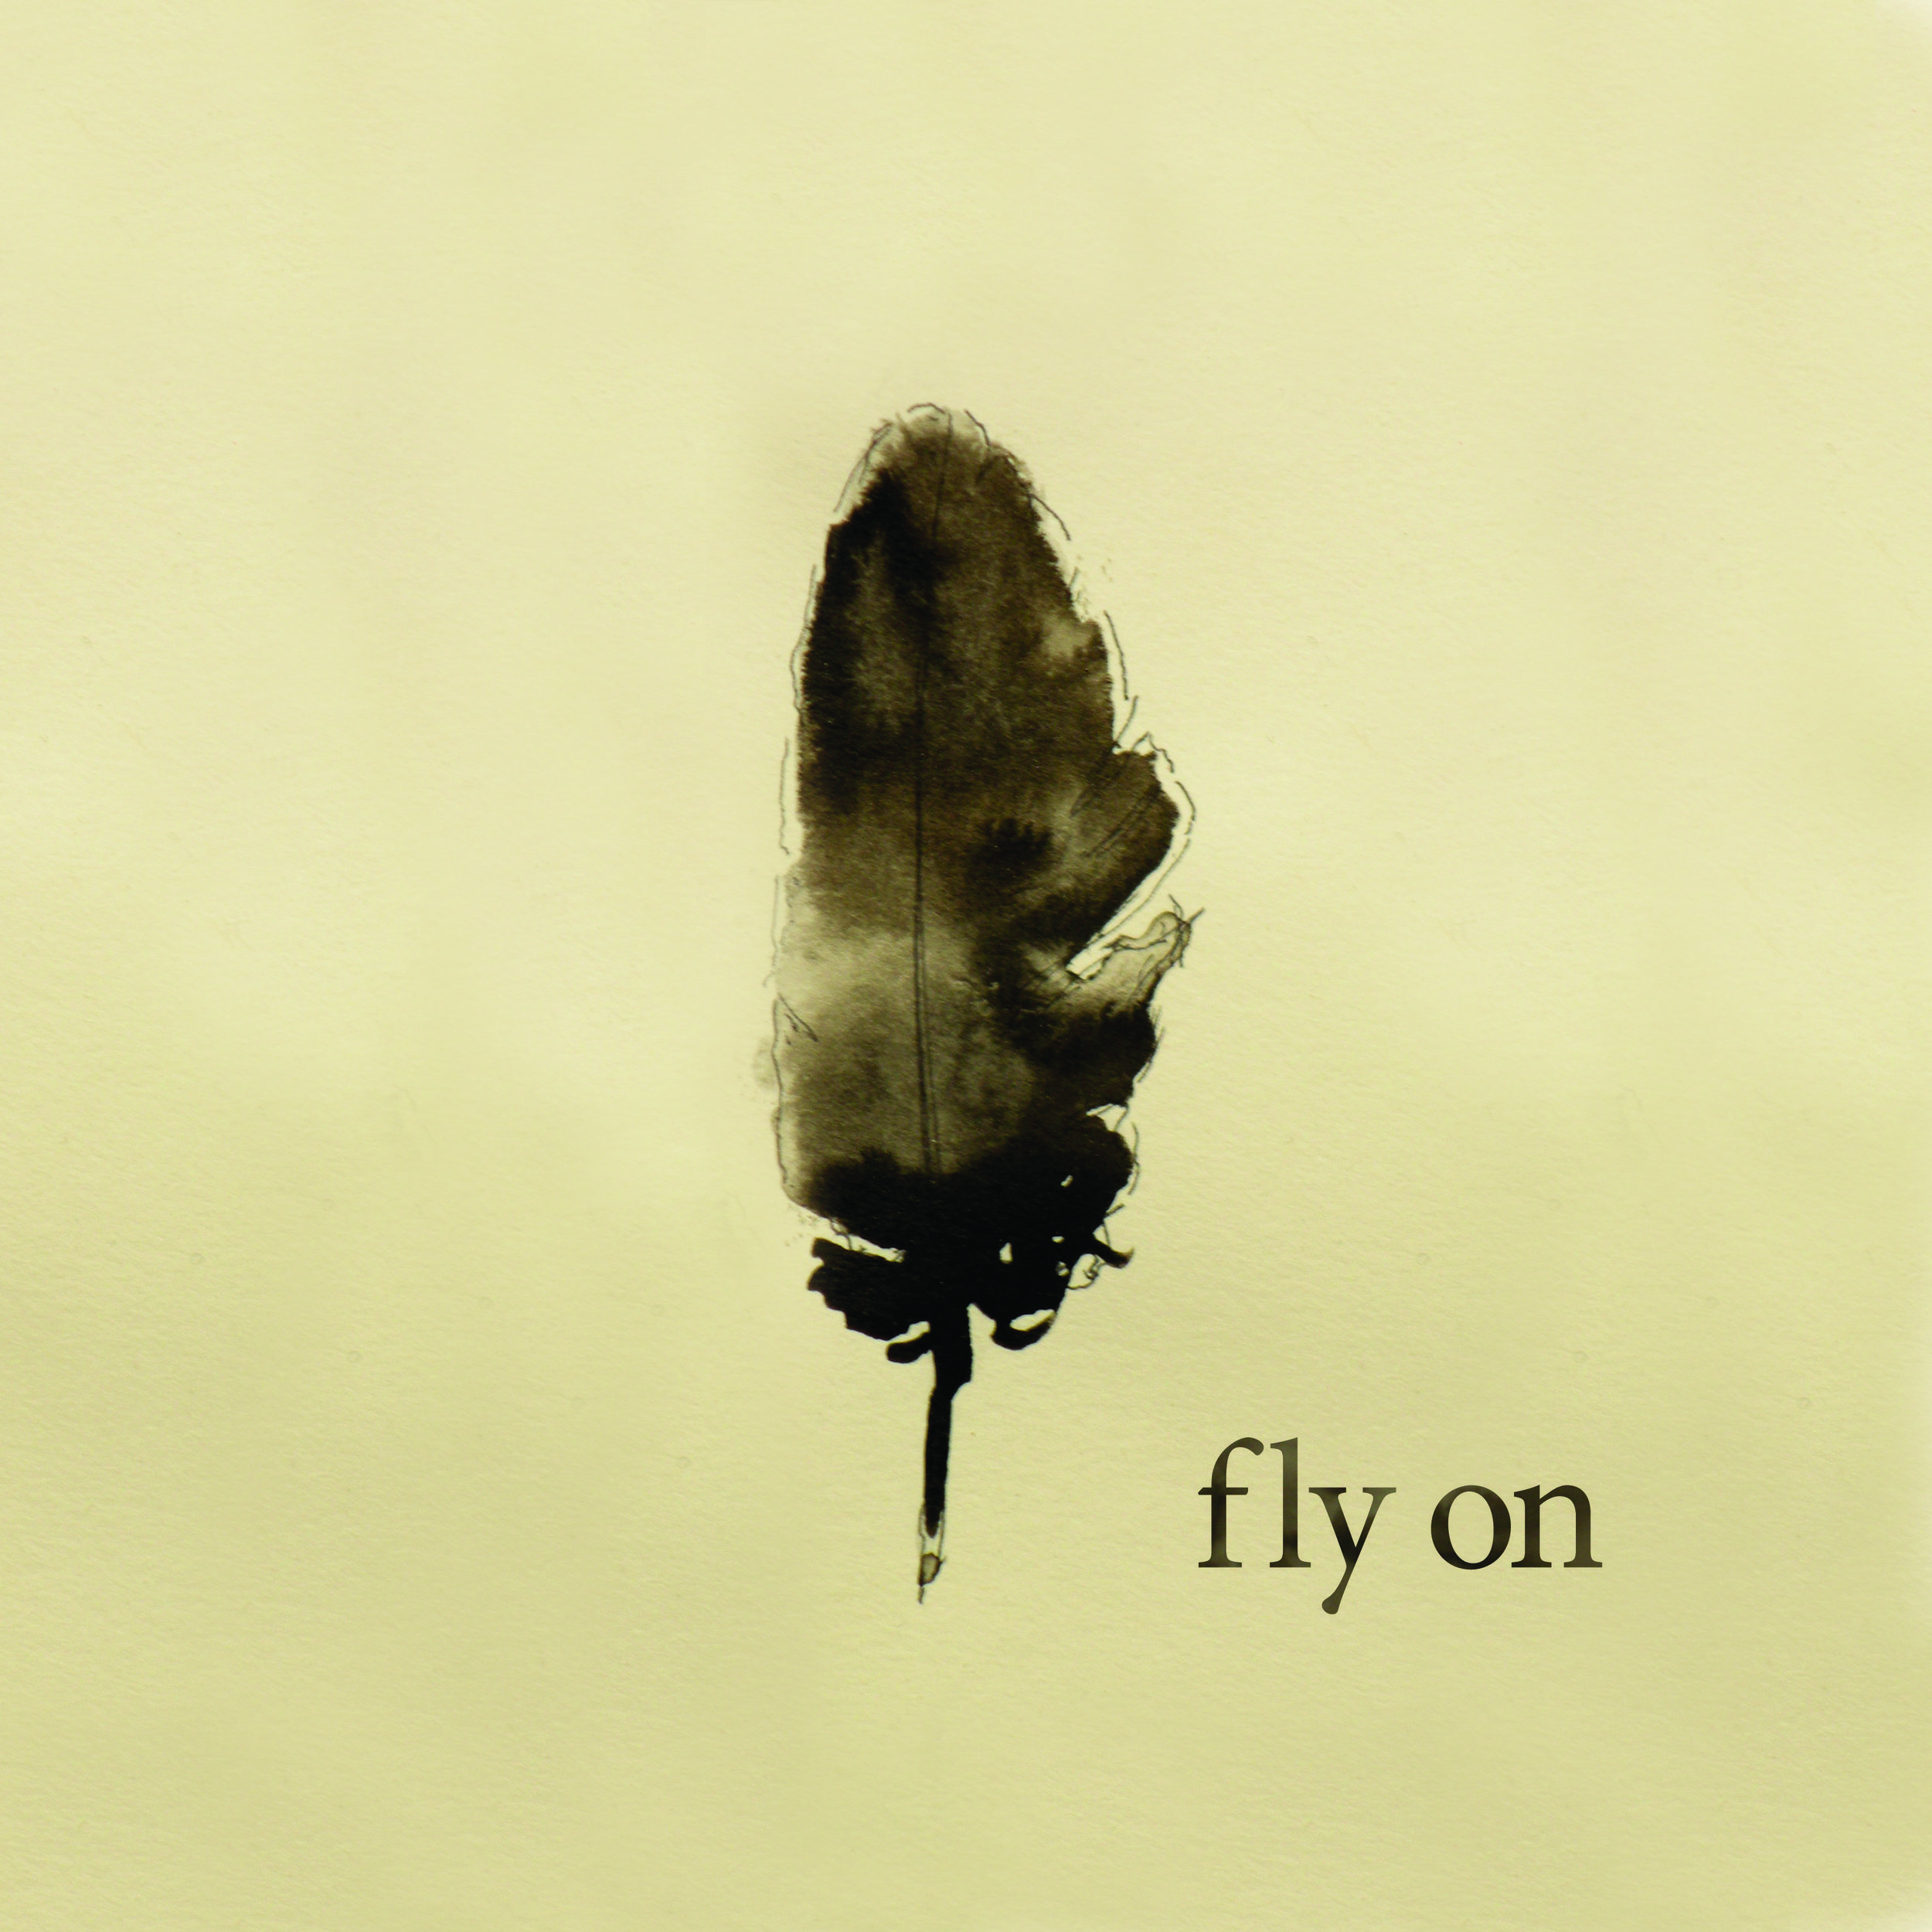 Album Cover: fly on  Artist:  Jacob Montague  Materials: Sumi ink, custom font